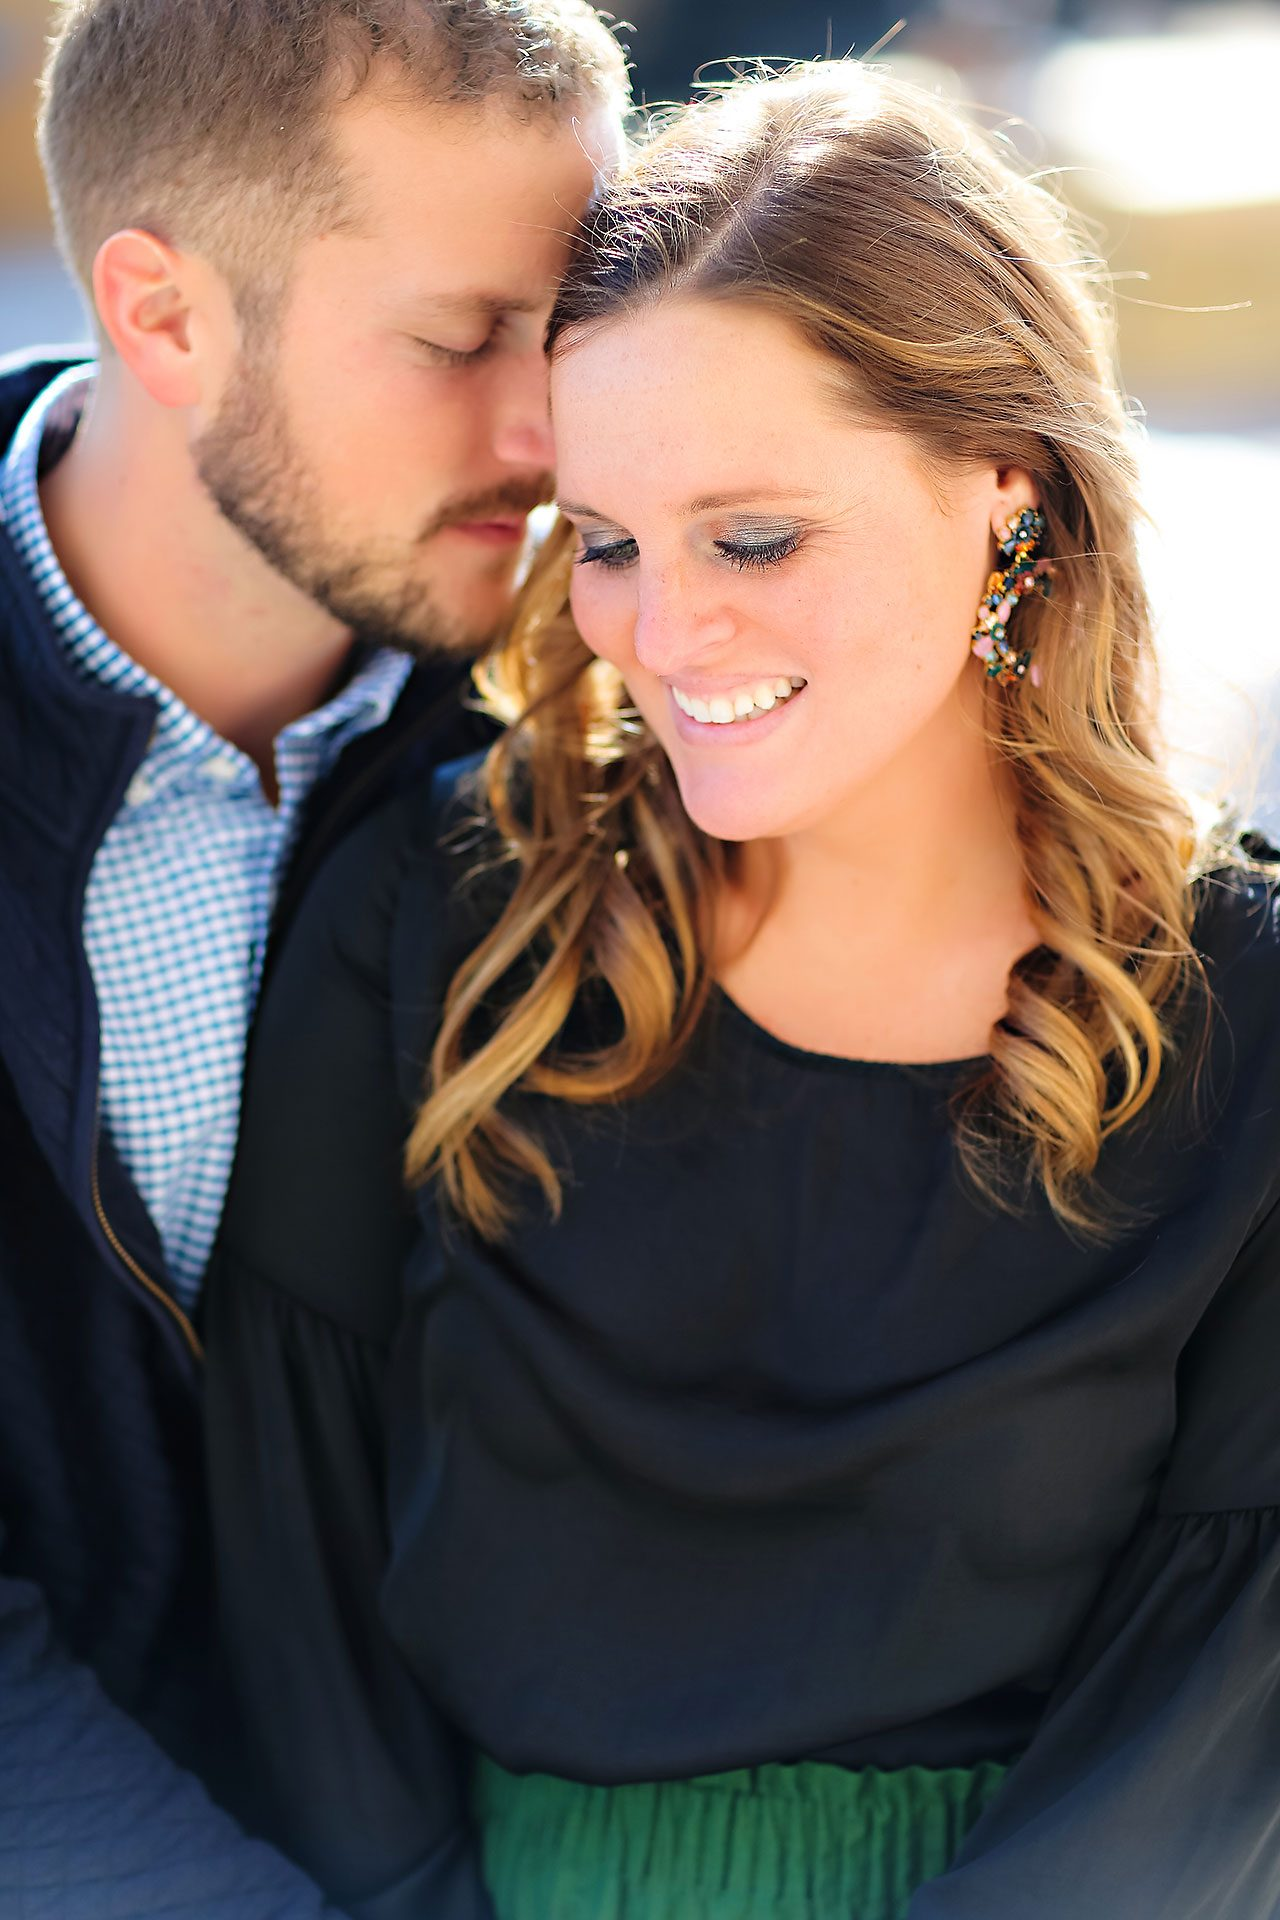 Erika Scott Fall Engagement Session 059